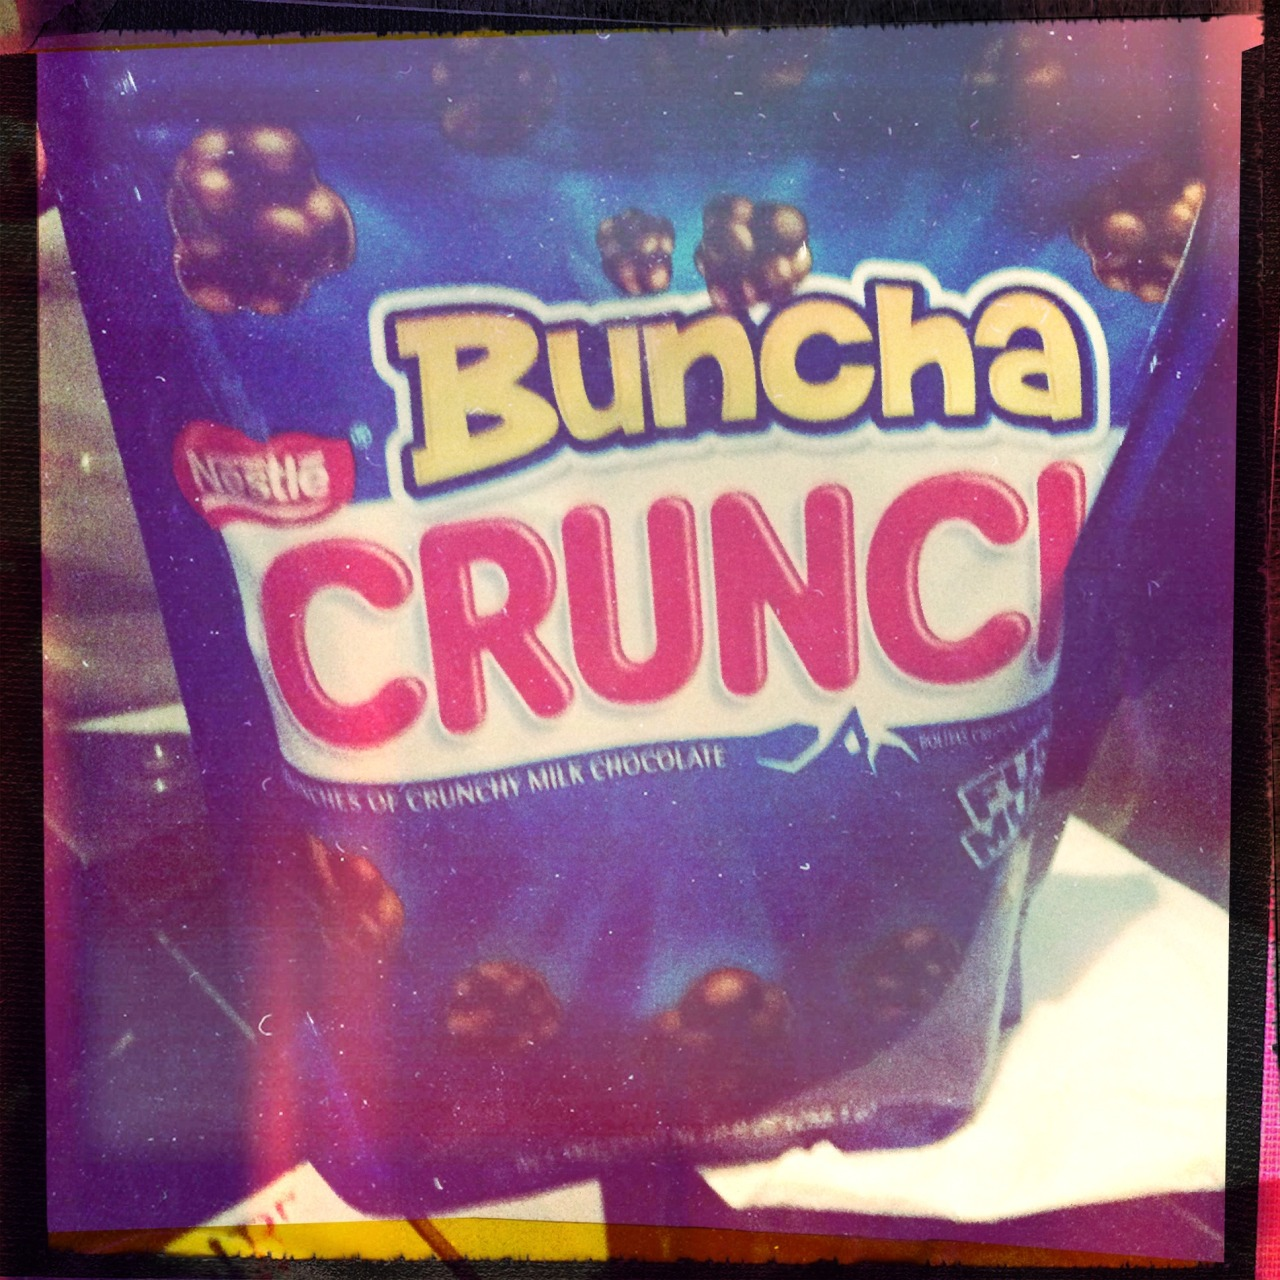 Best thing ever created! #chocolate #crunch #yum